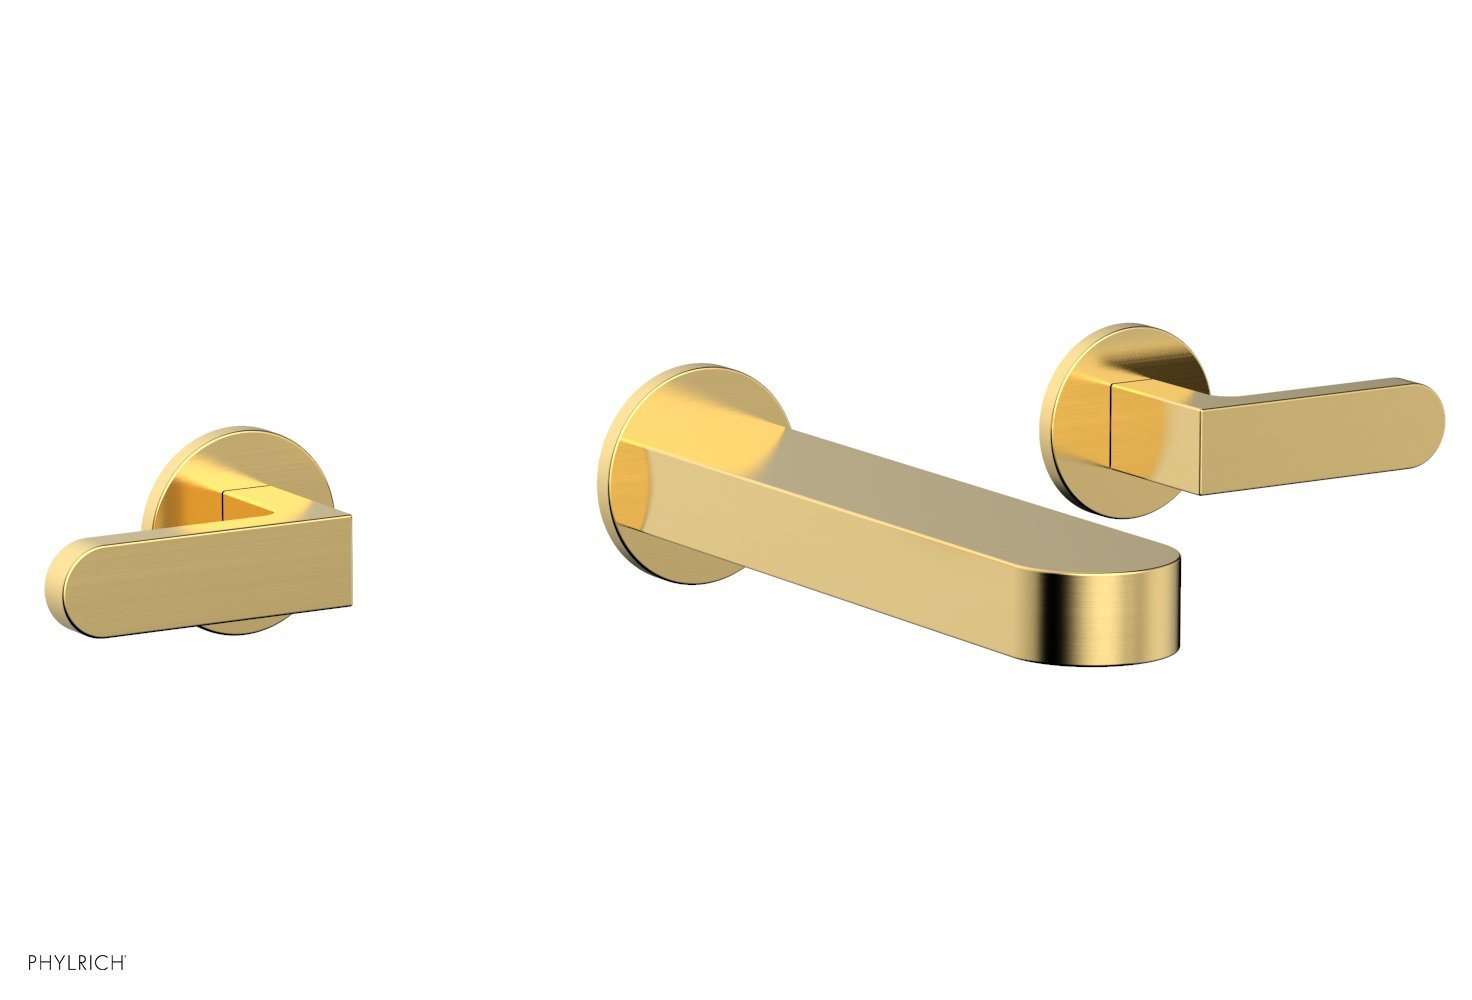 Phylrich 183-12-024 ROND Wall Lavatory Set - Lever Handles - Satin Gold